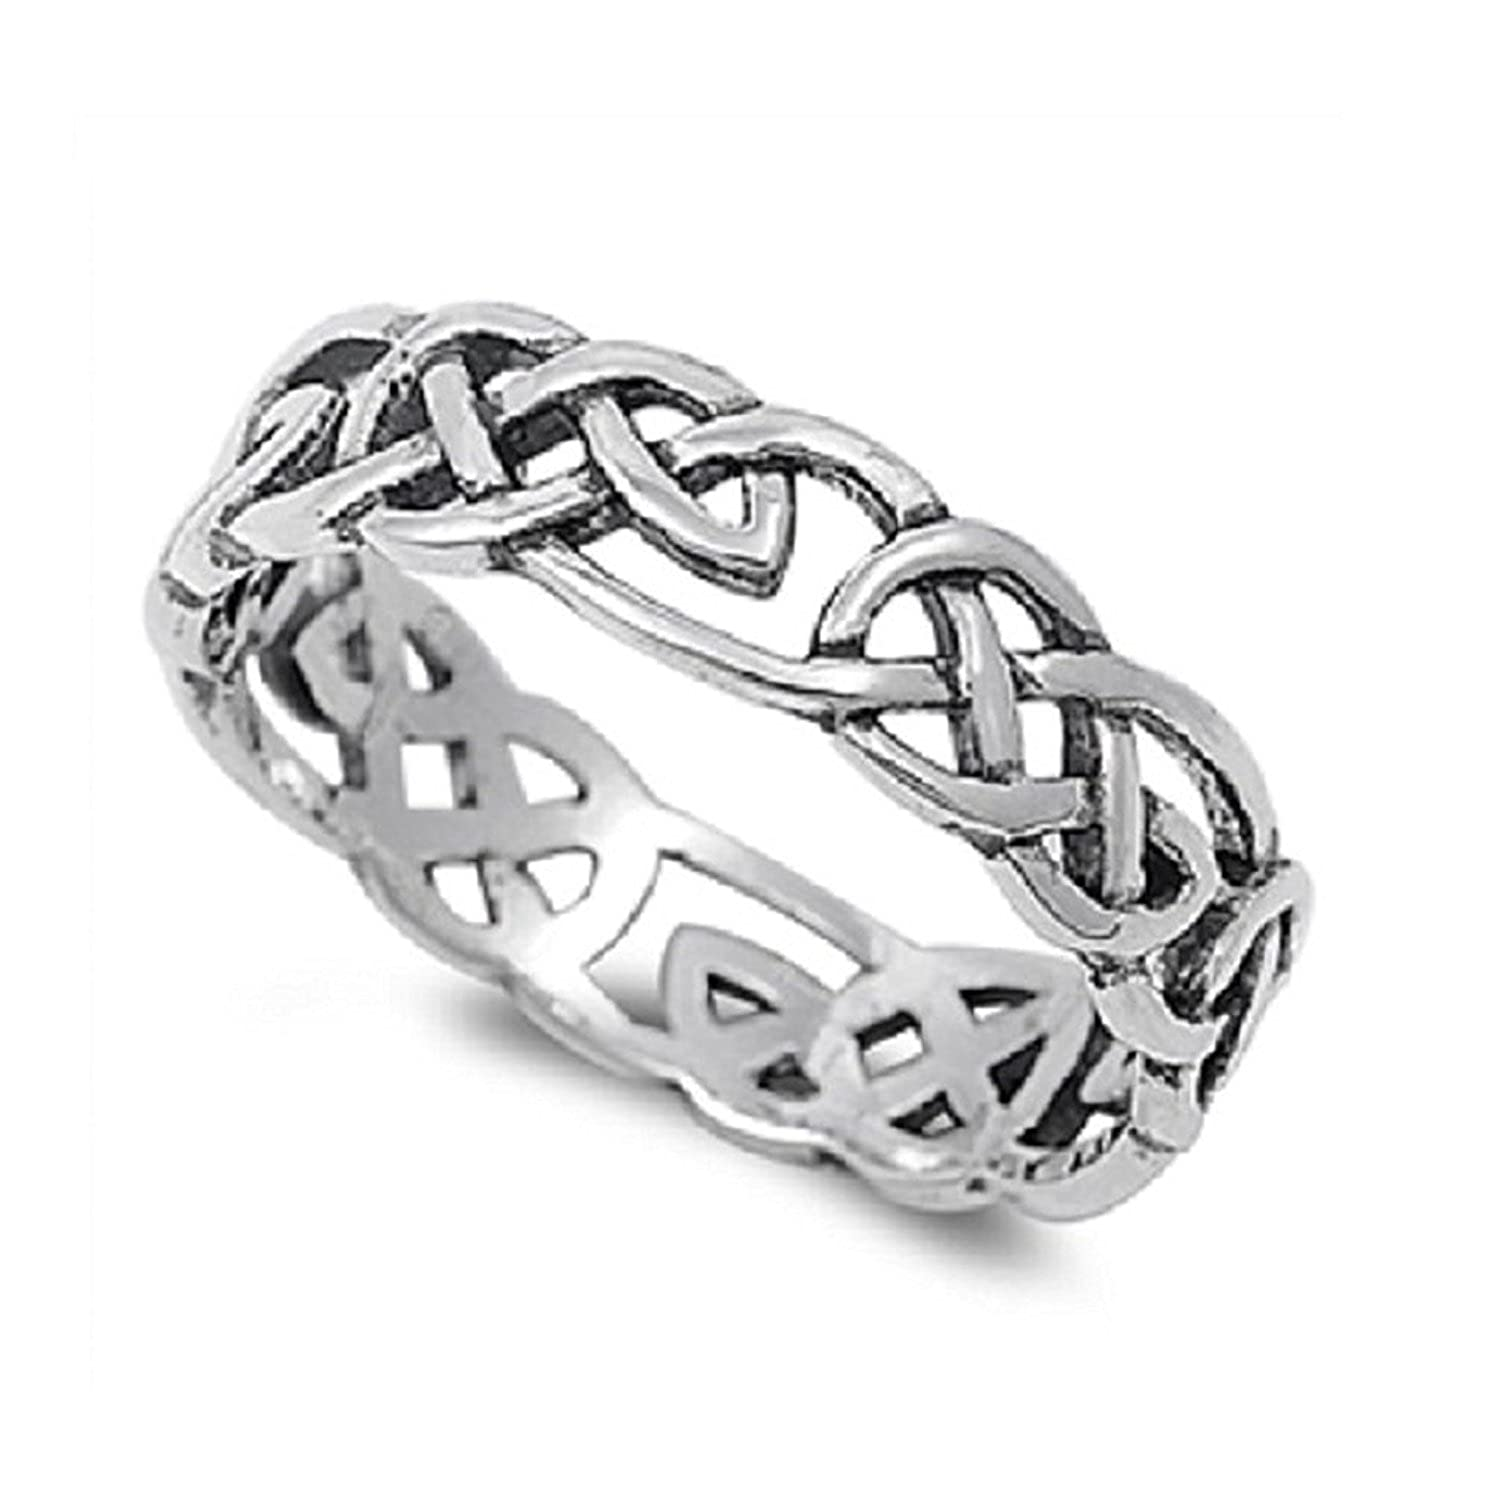 Celtic Wicca Pagan Eternity Ring Sterling Silver 925 (Sizes 4-15) CloseoutWarehouse